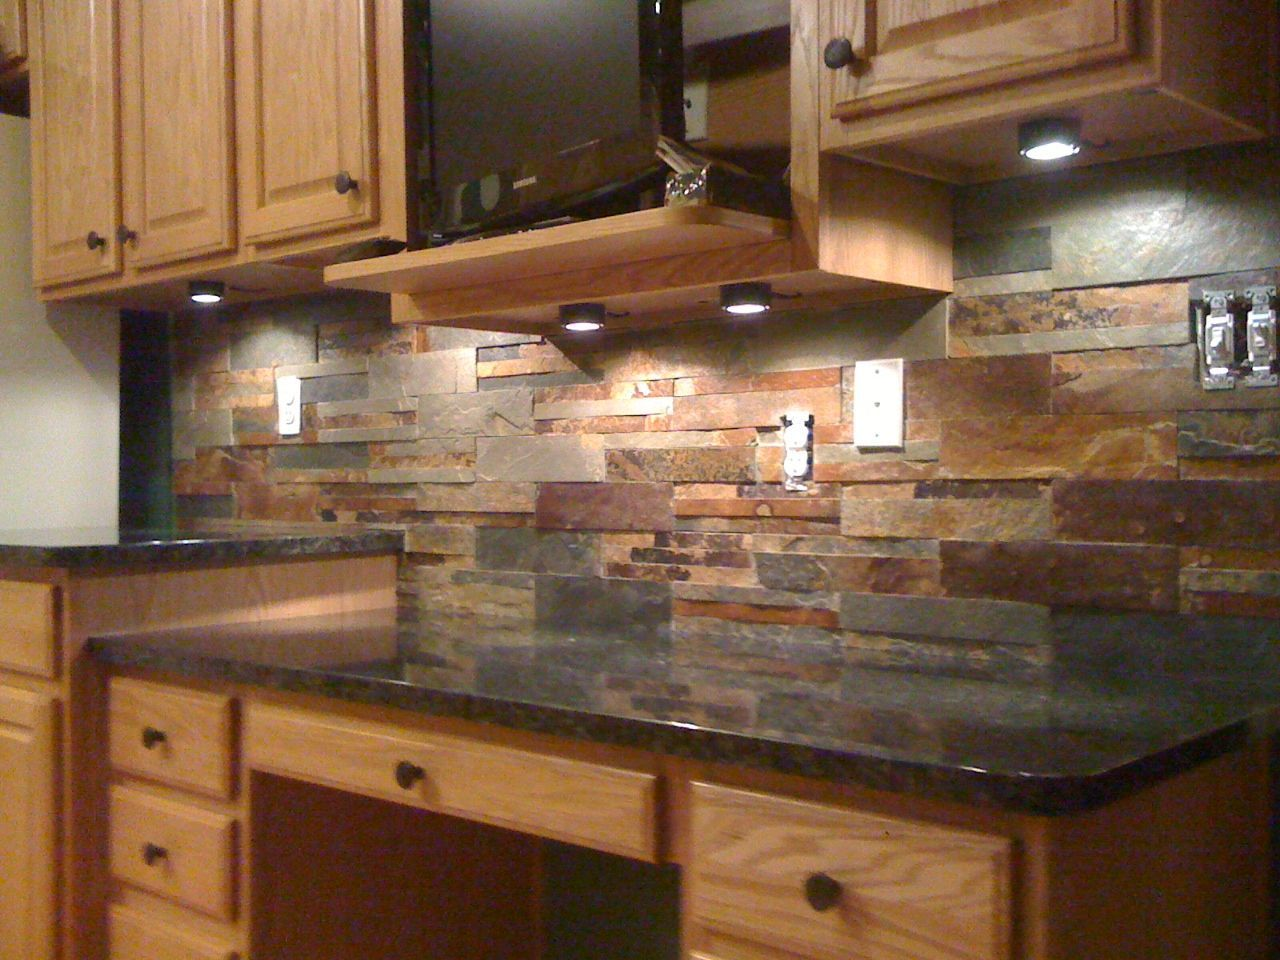 Ideas for backsplash with black granite countertops google ideas for backsplash with black granite countertops google search dailygadgetfo Choice Image